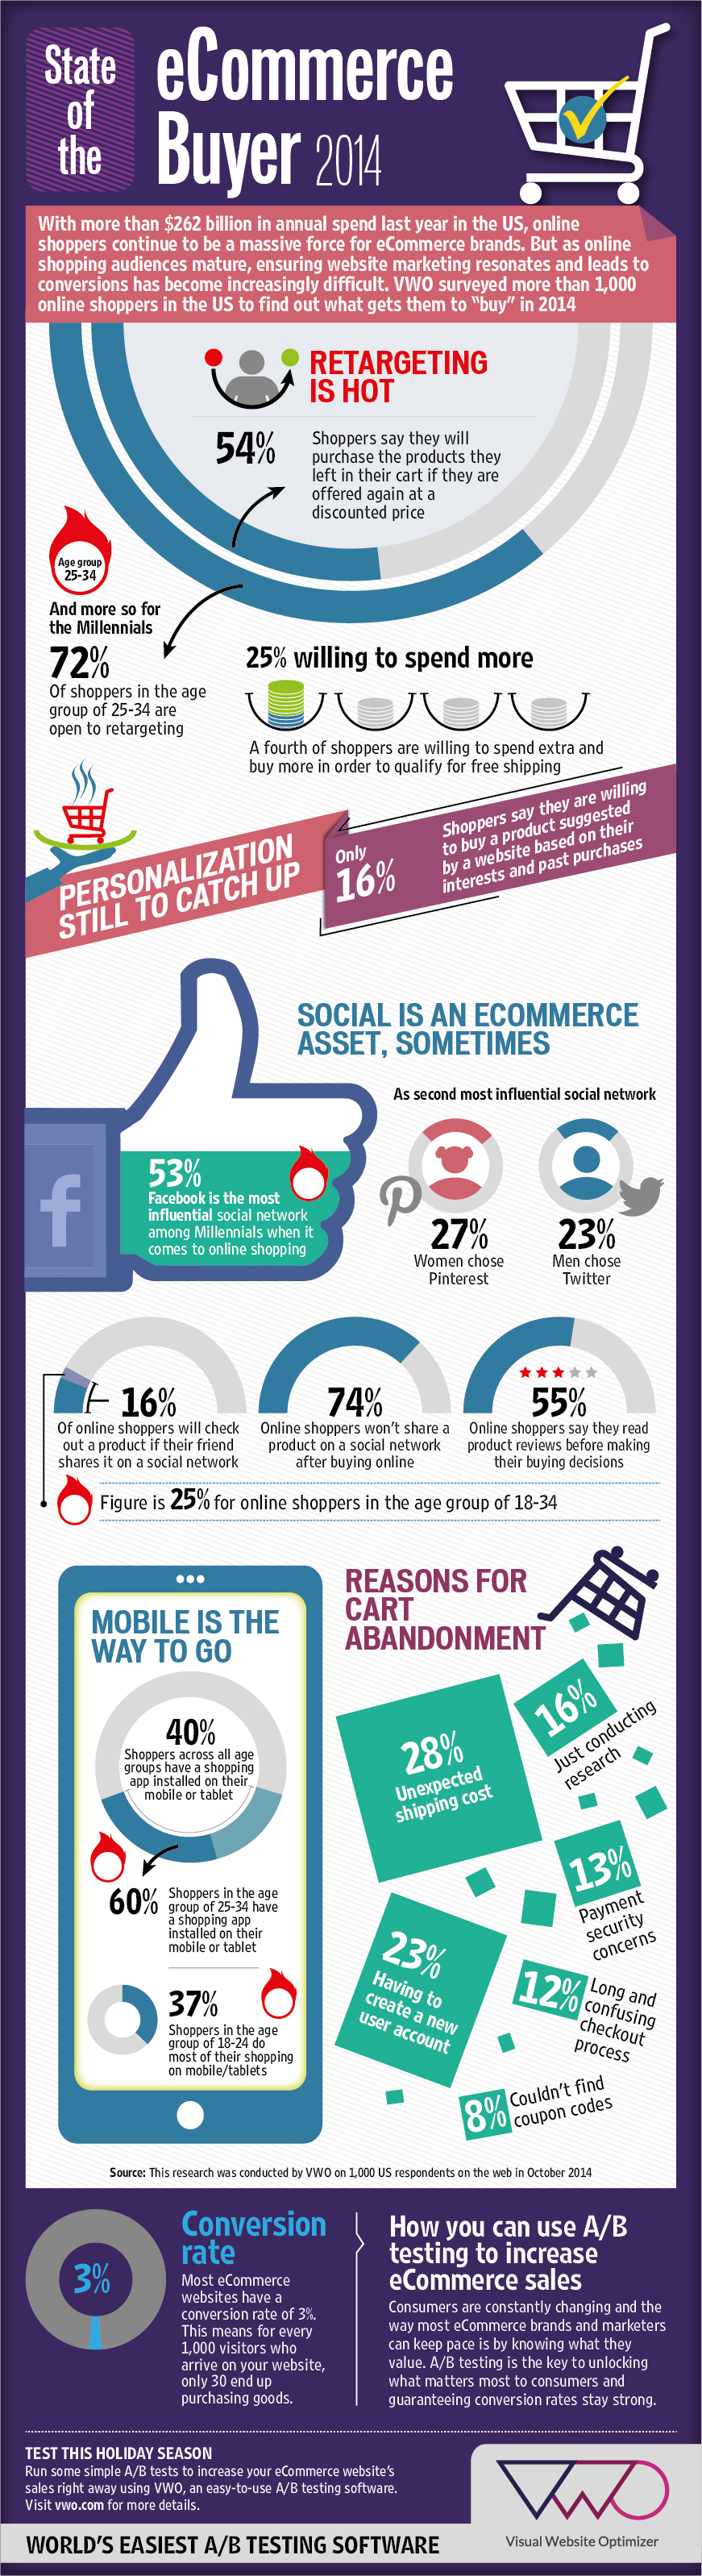 Infographic vwo ecommerce survey 2014 what makes shoppers buy click to get the full image ecommerceinfographic fandeluxe Images